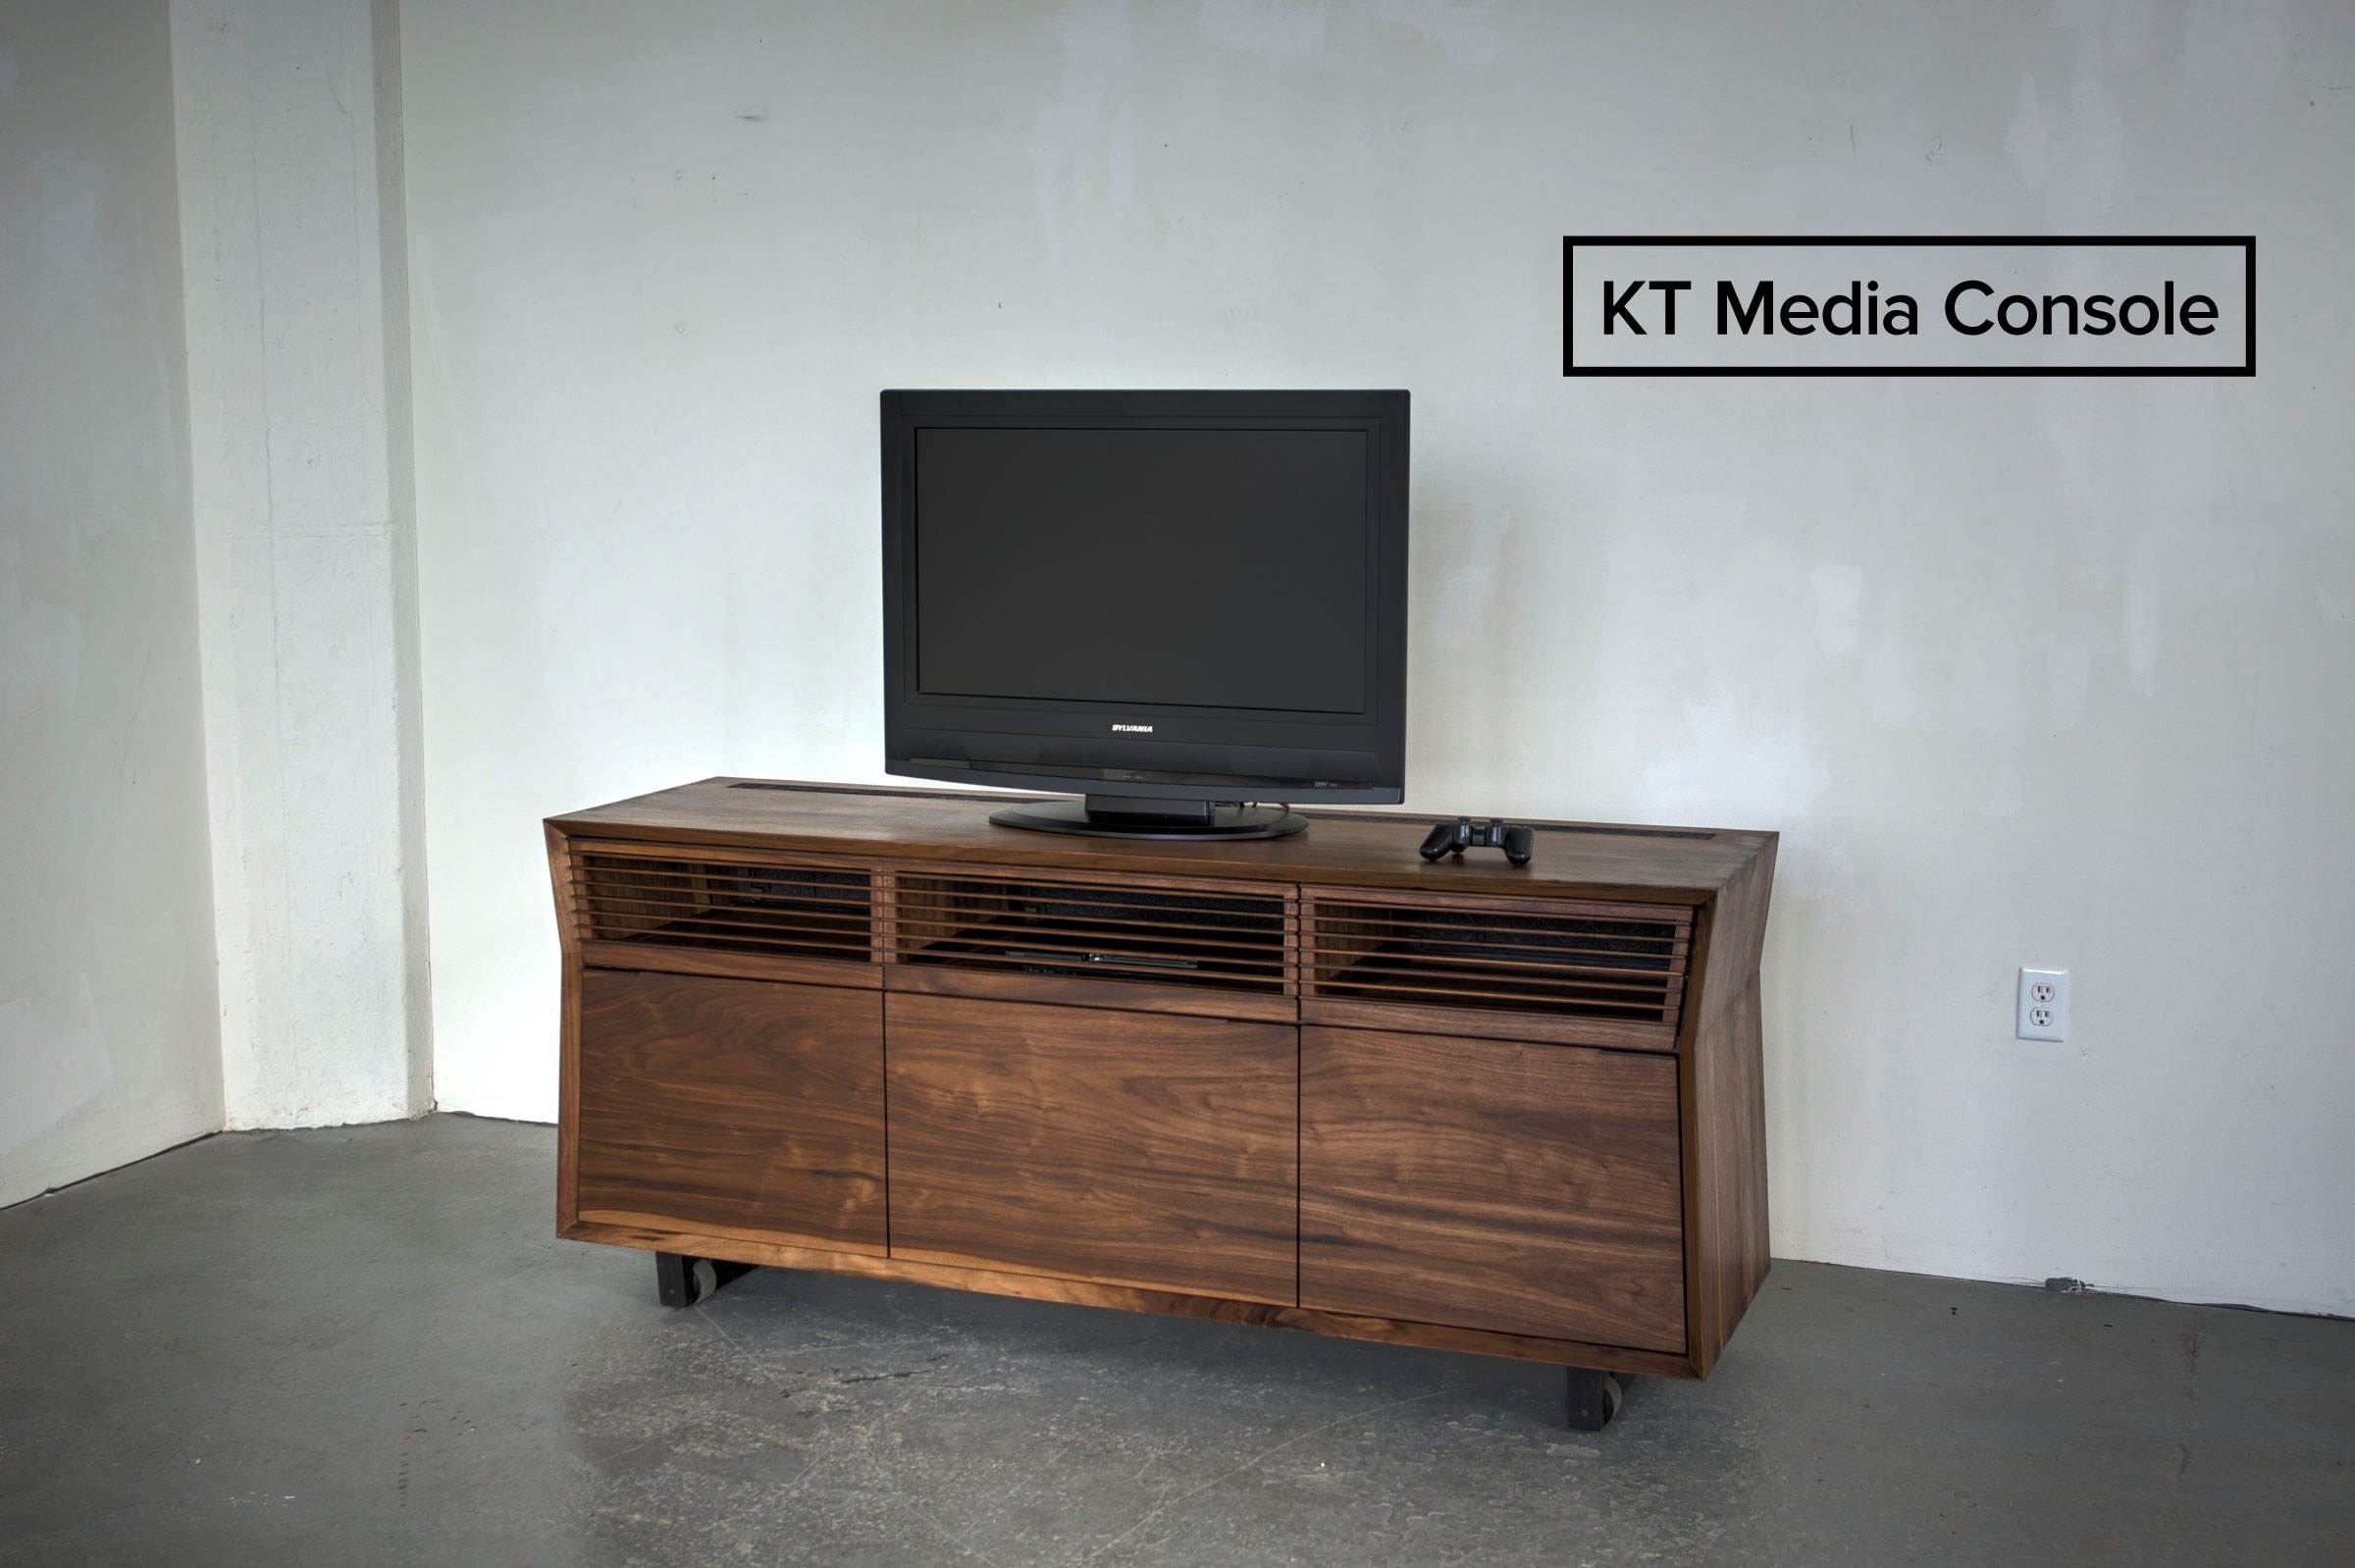 KT Media Console